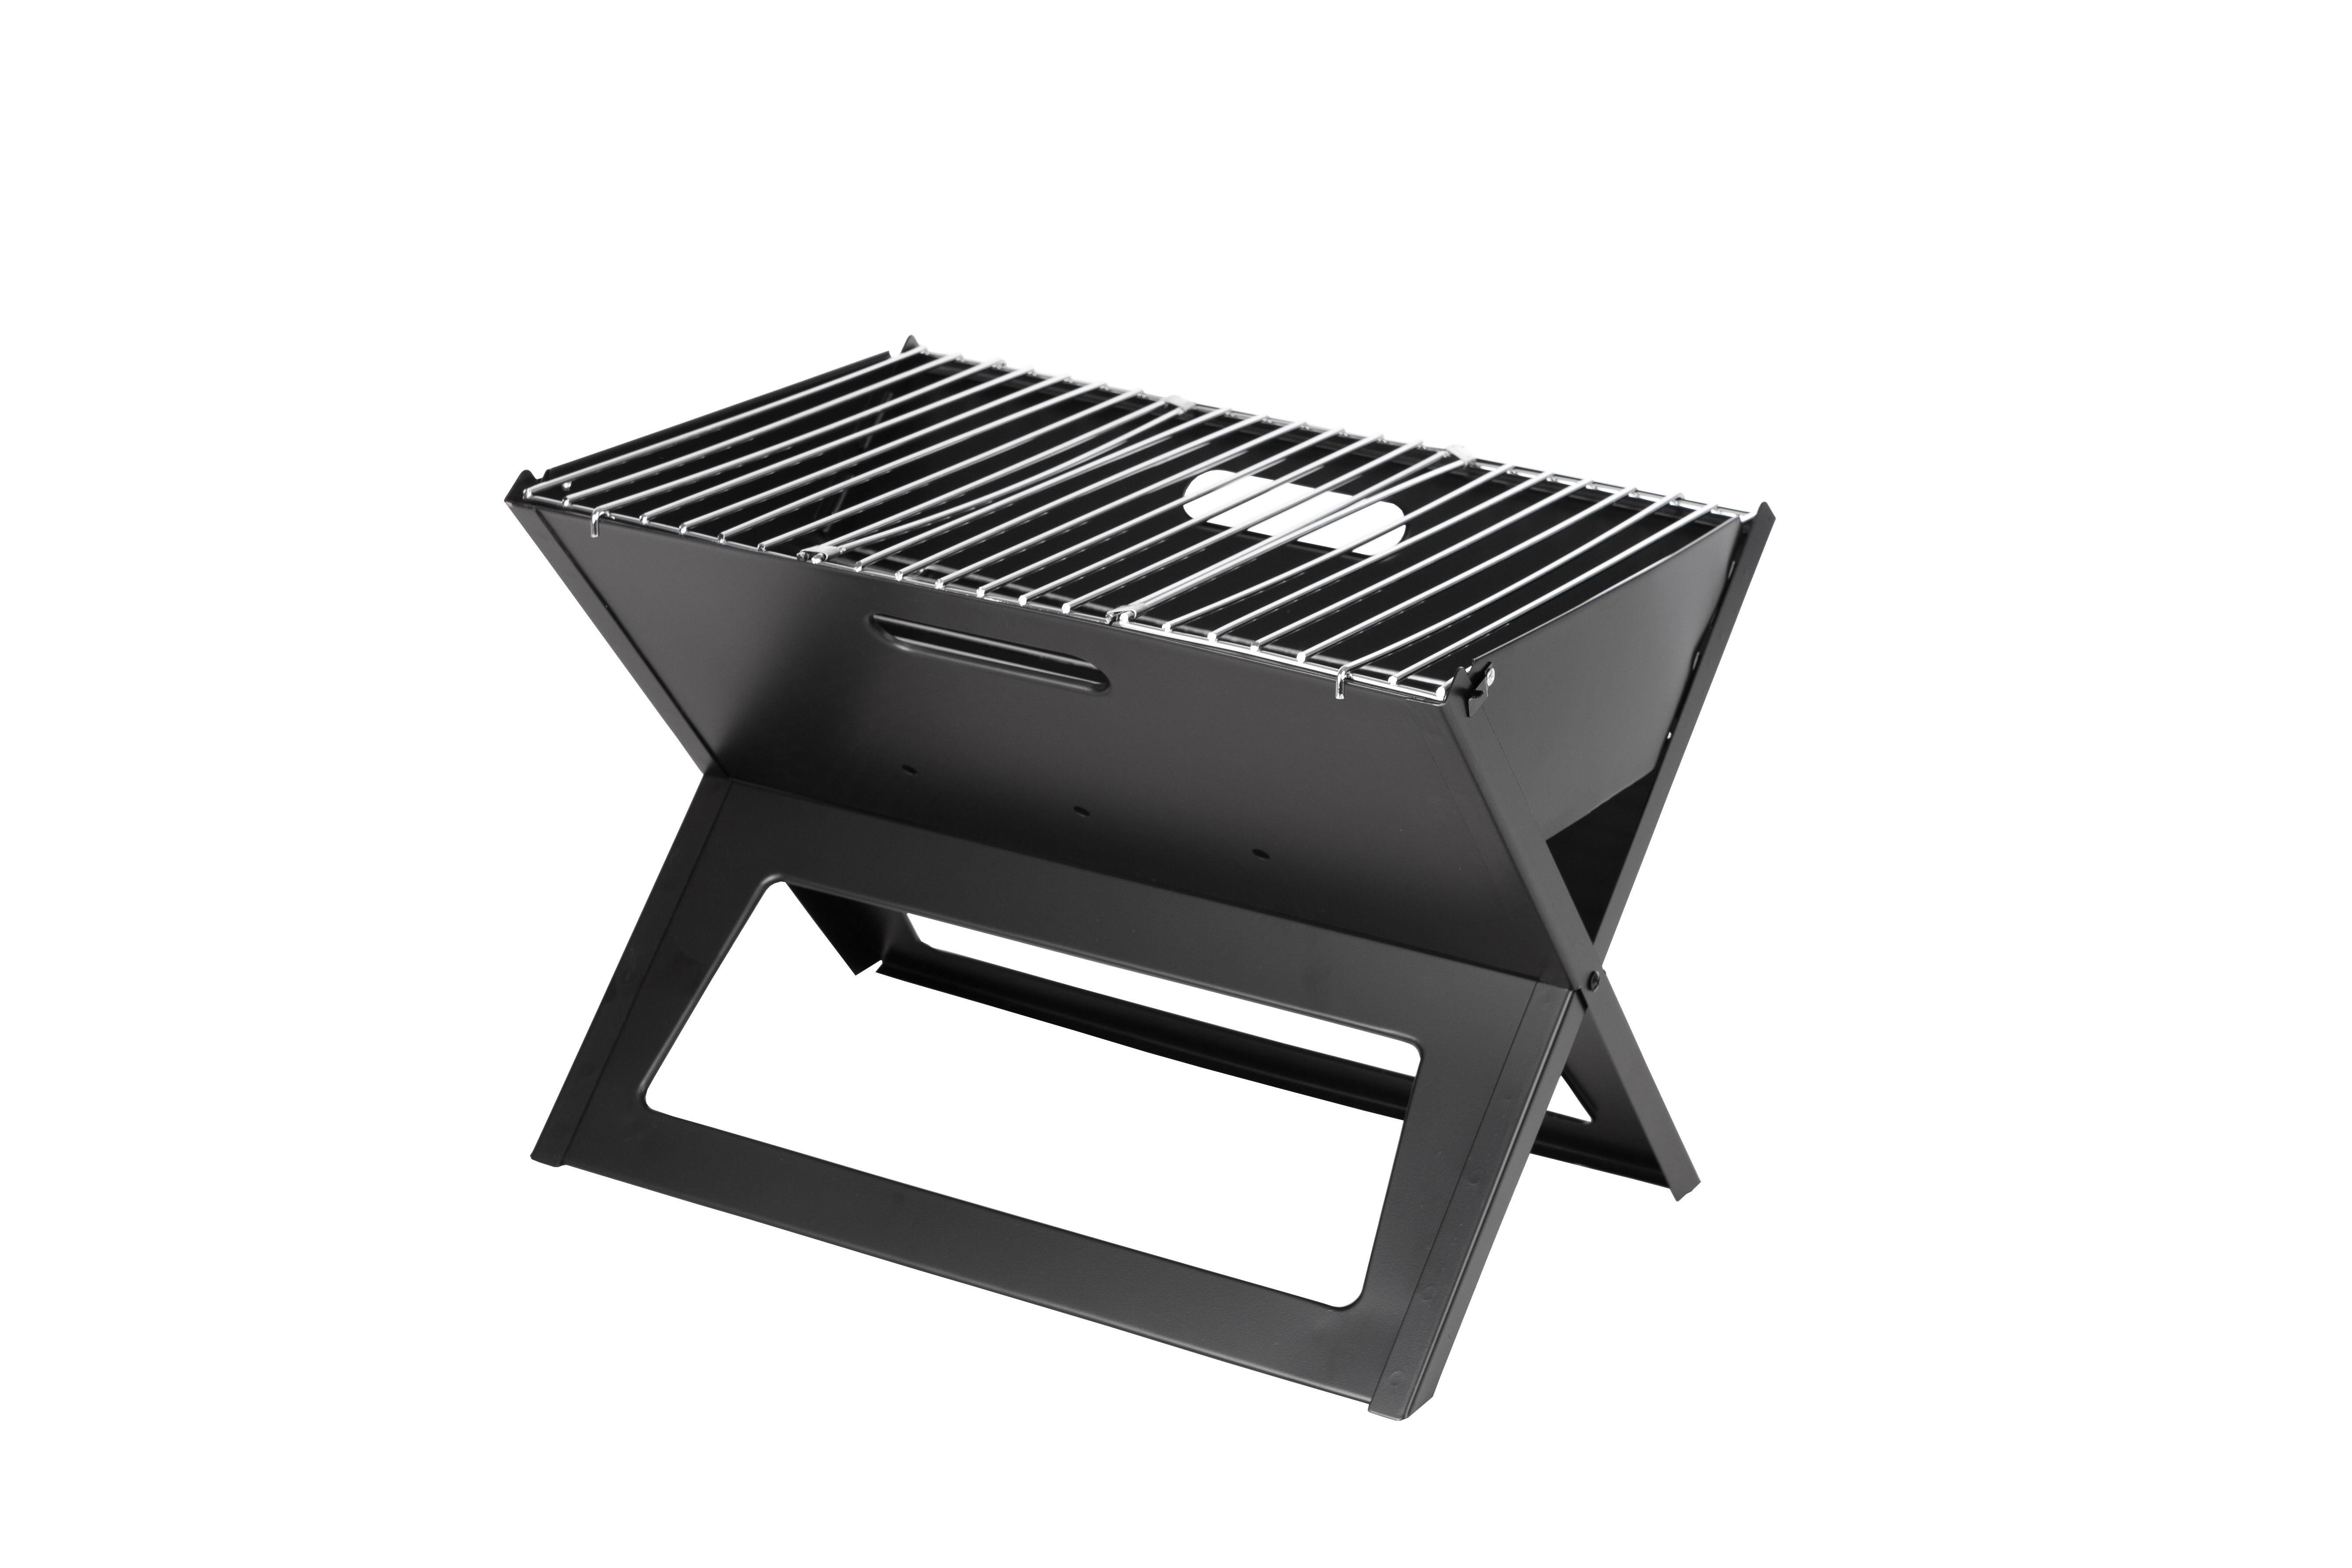 11.82 in L x 17.53 in W x 14.18 in H HotSpot Notebook Charcoal BBQ Grill